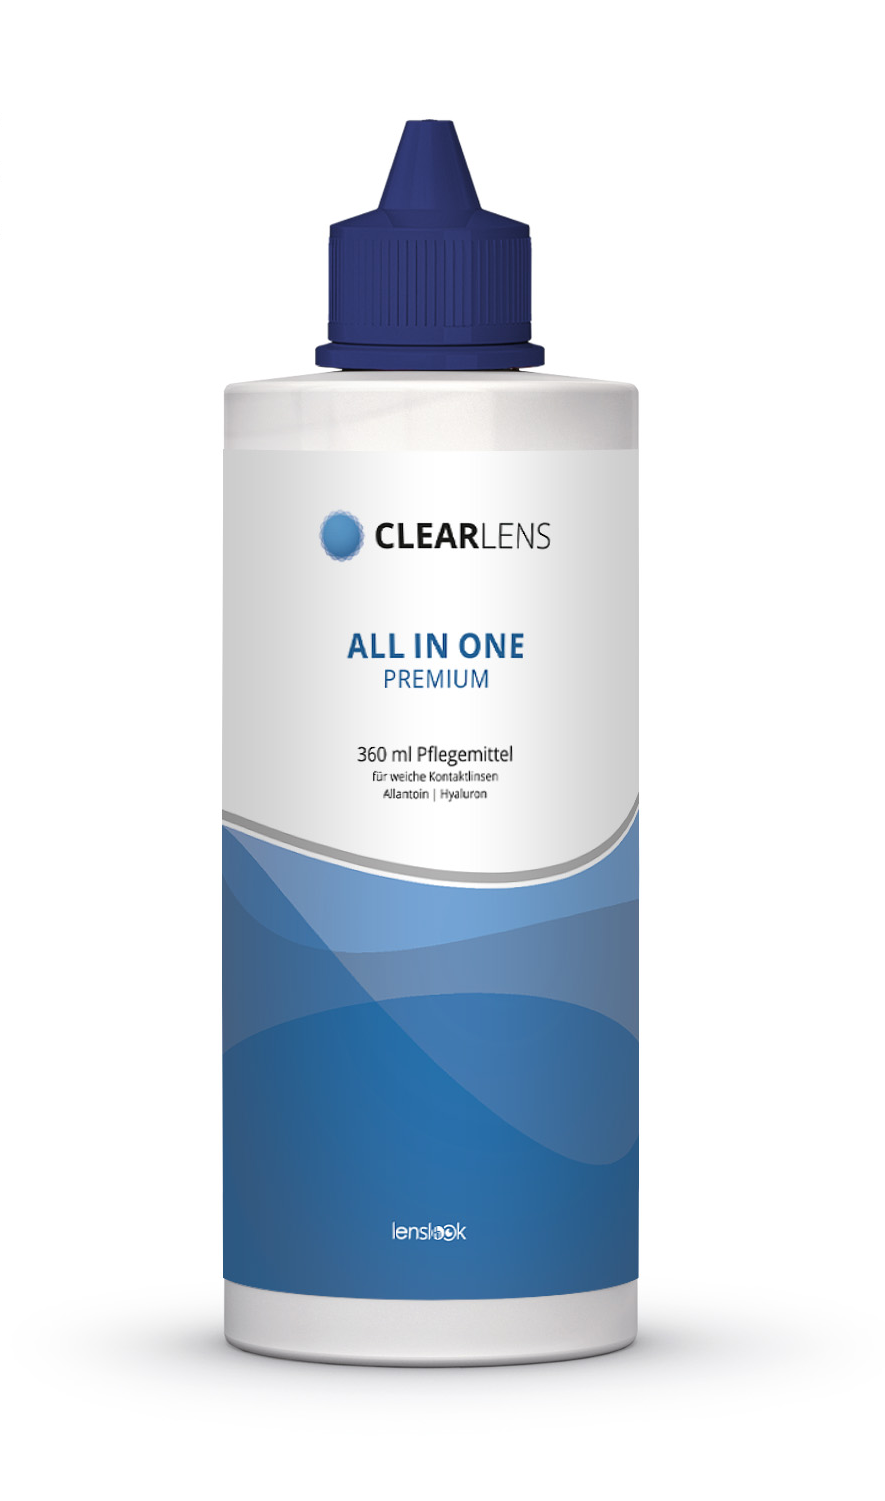 clearlens_premium_360ml_all-in-oneWNYZQWW8aGZjl